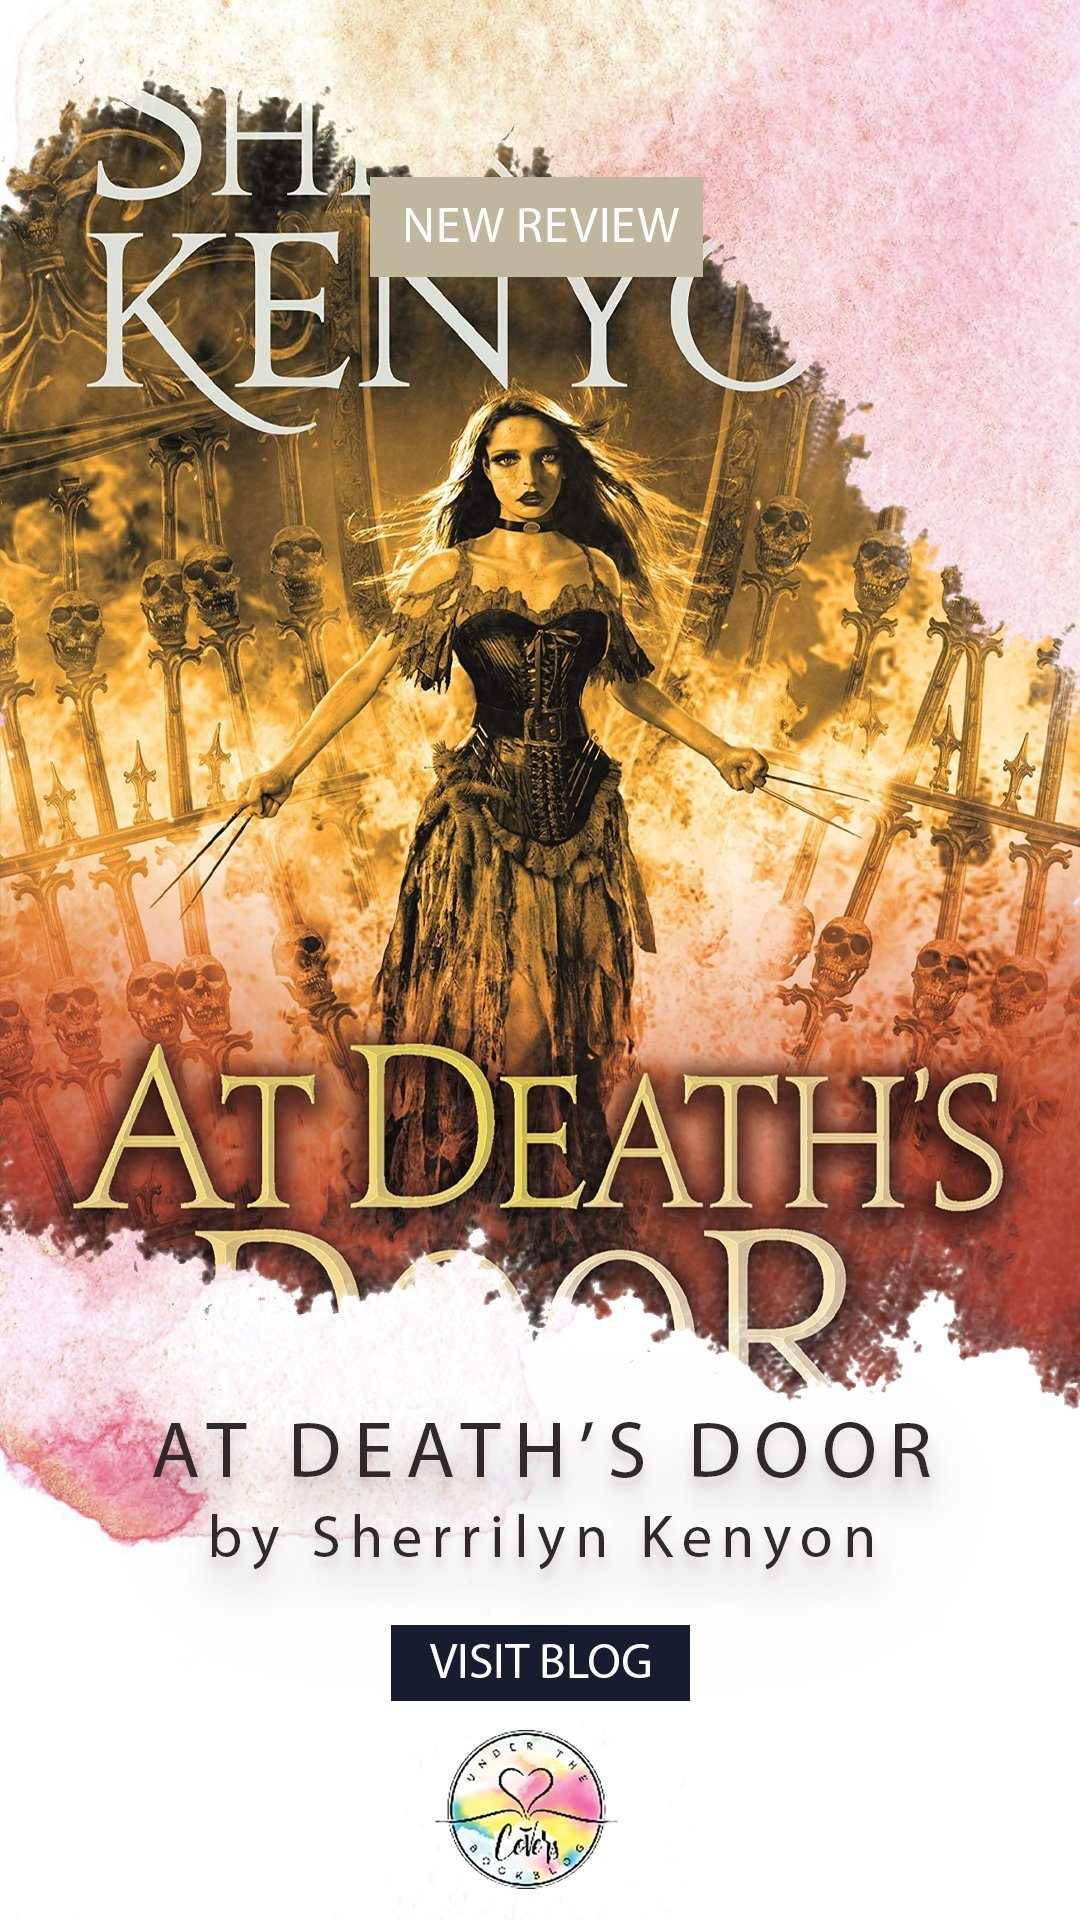 ARC Review: At Death's Door by Sherrilyn Kenyon